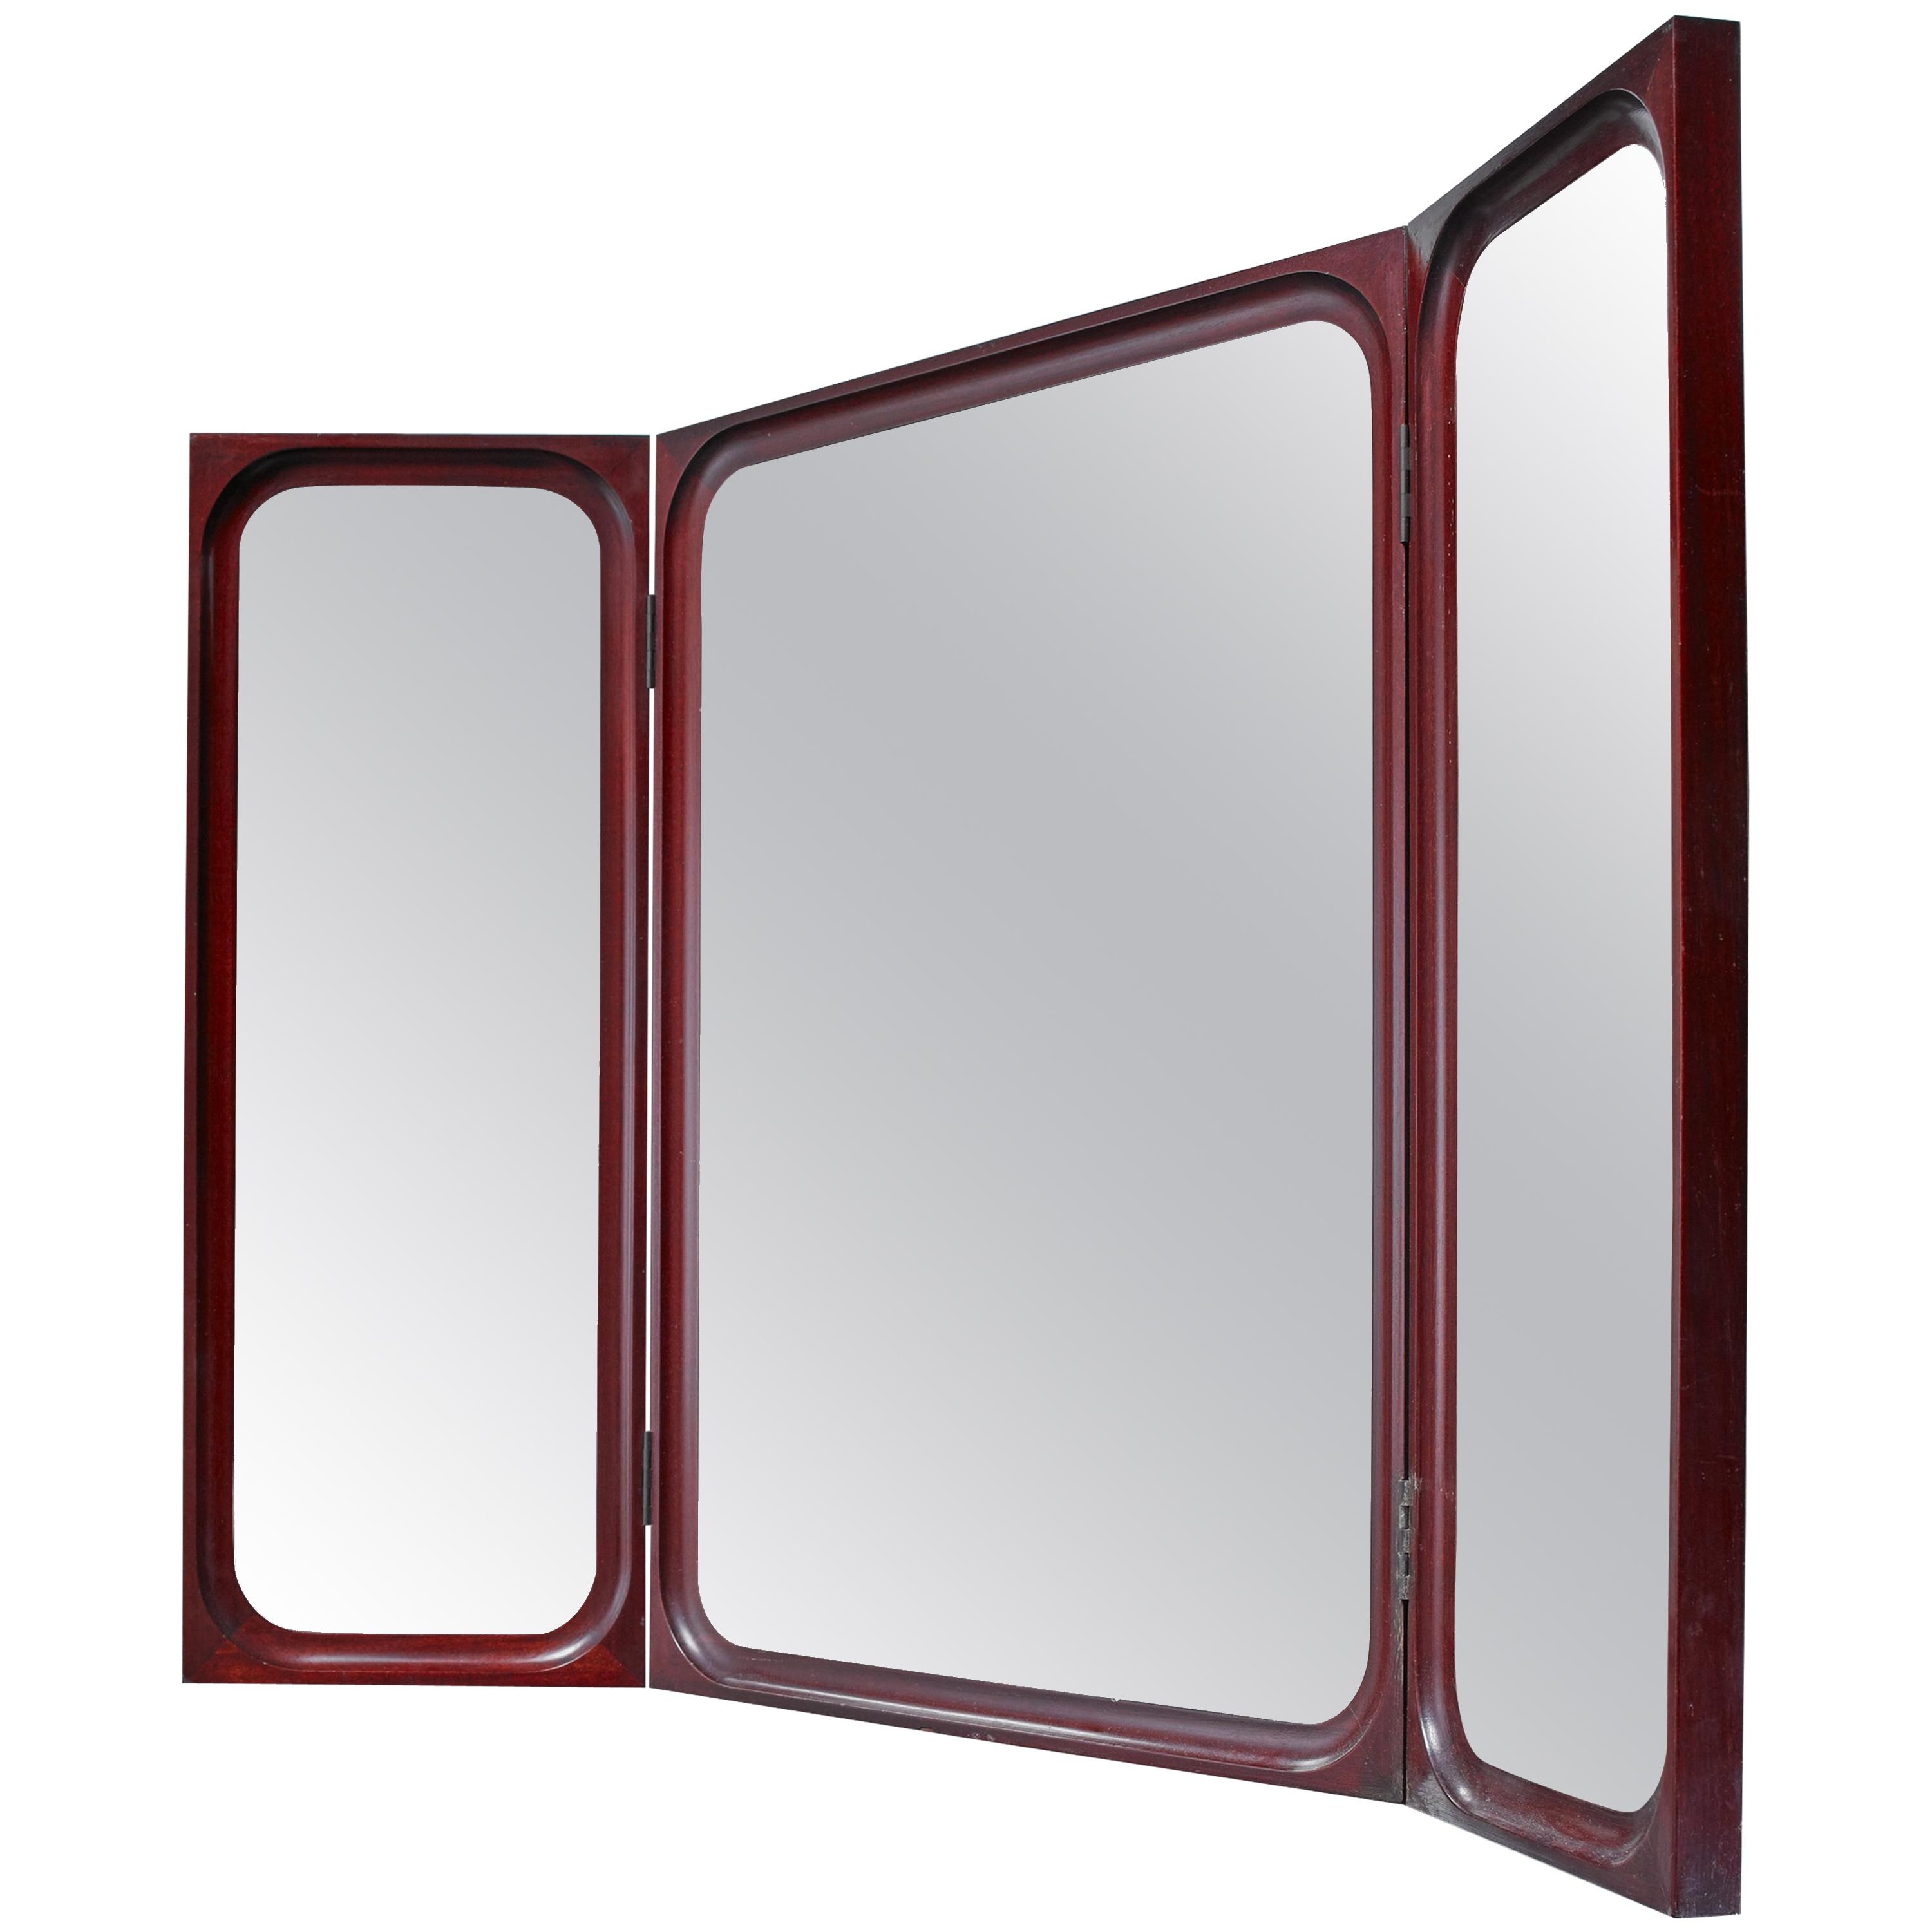 Recent Frode Holm Fold Out Triptych Wall Mirror For Illums Bolighus, Denmark, 1950S Within Folding Wall Mirrors (View 13 of 20)